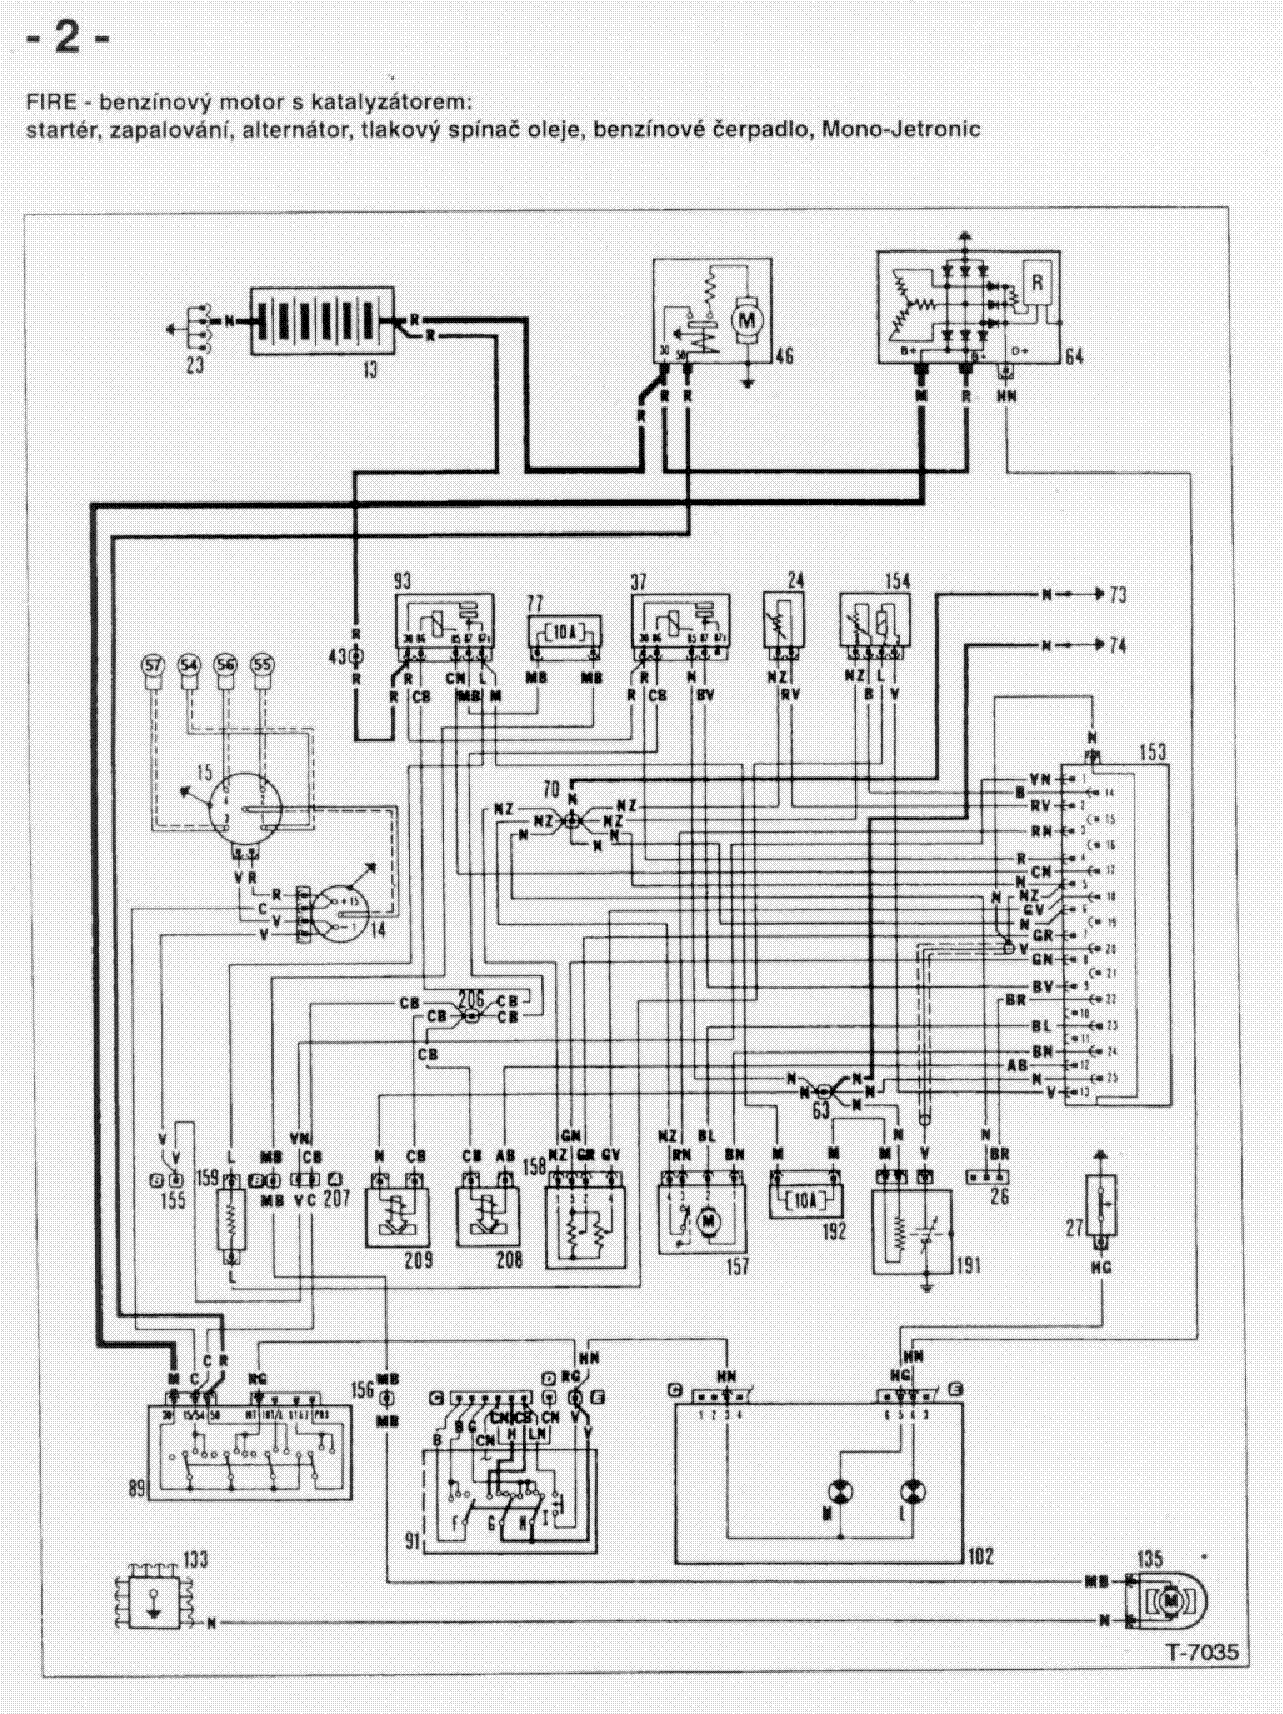 1MX_975] Fiat 600 Tractor Wiring Diagram | structure-harvest wiring diagram  option | structure-harvest.brunasibille.itbrunasibille.it